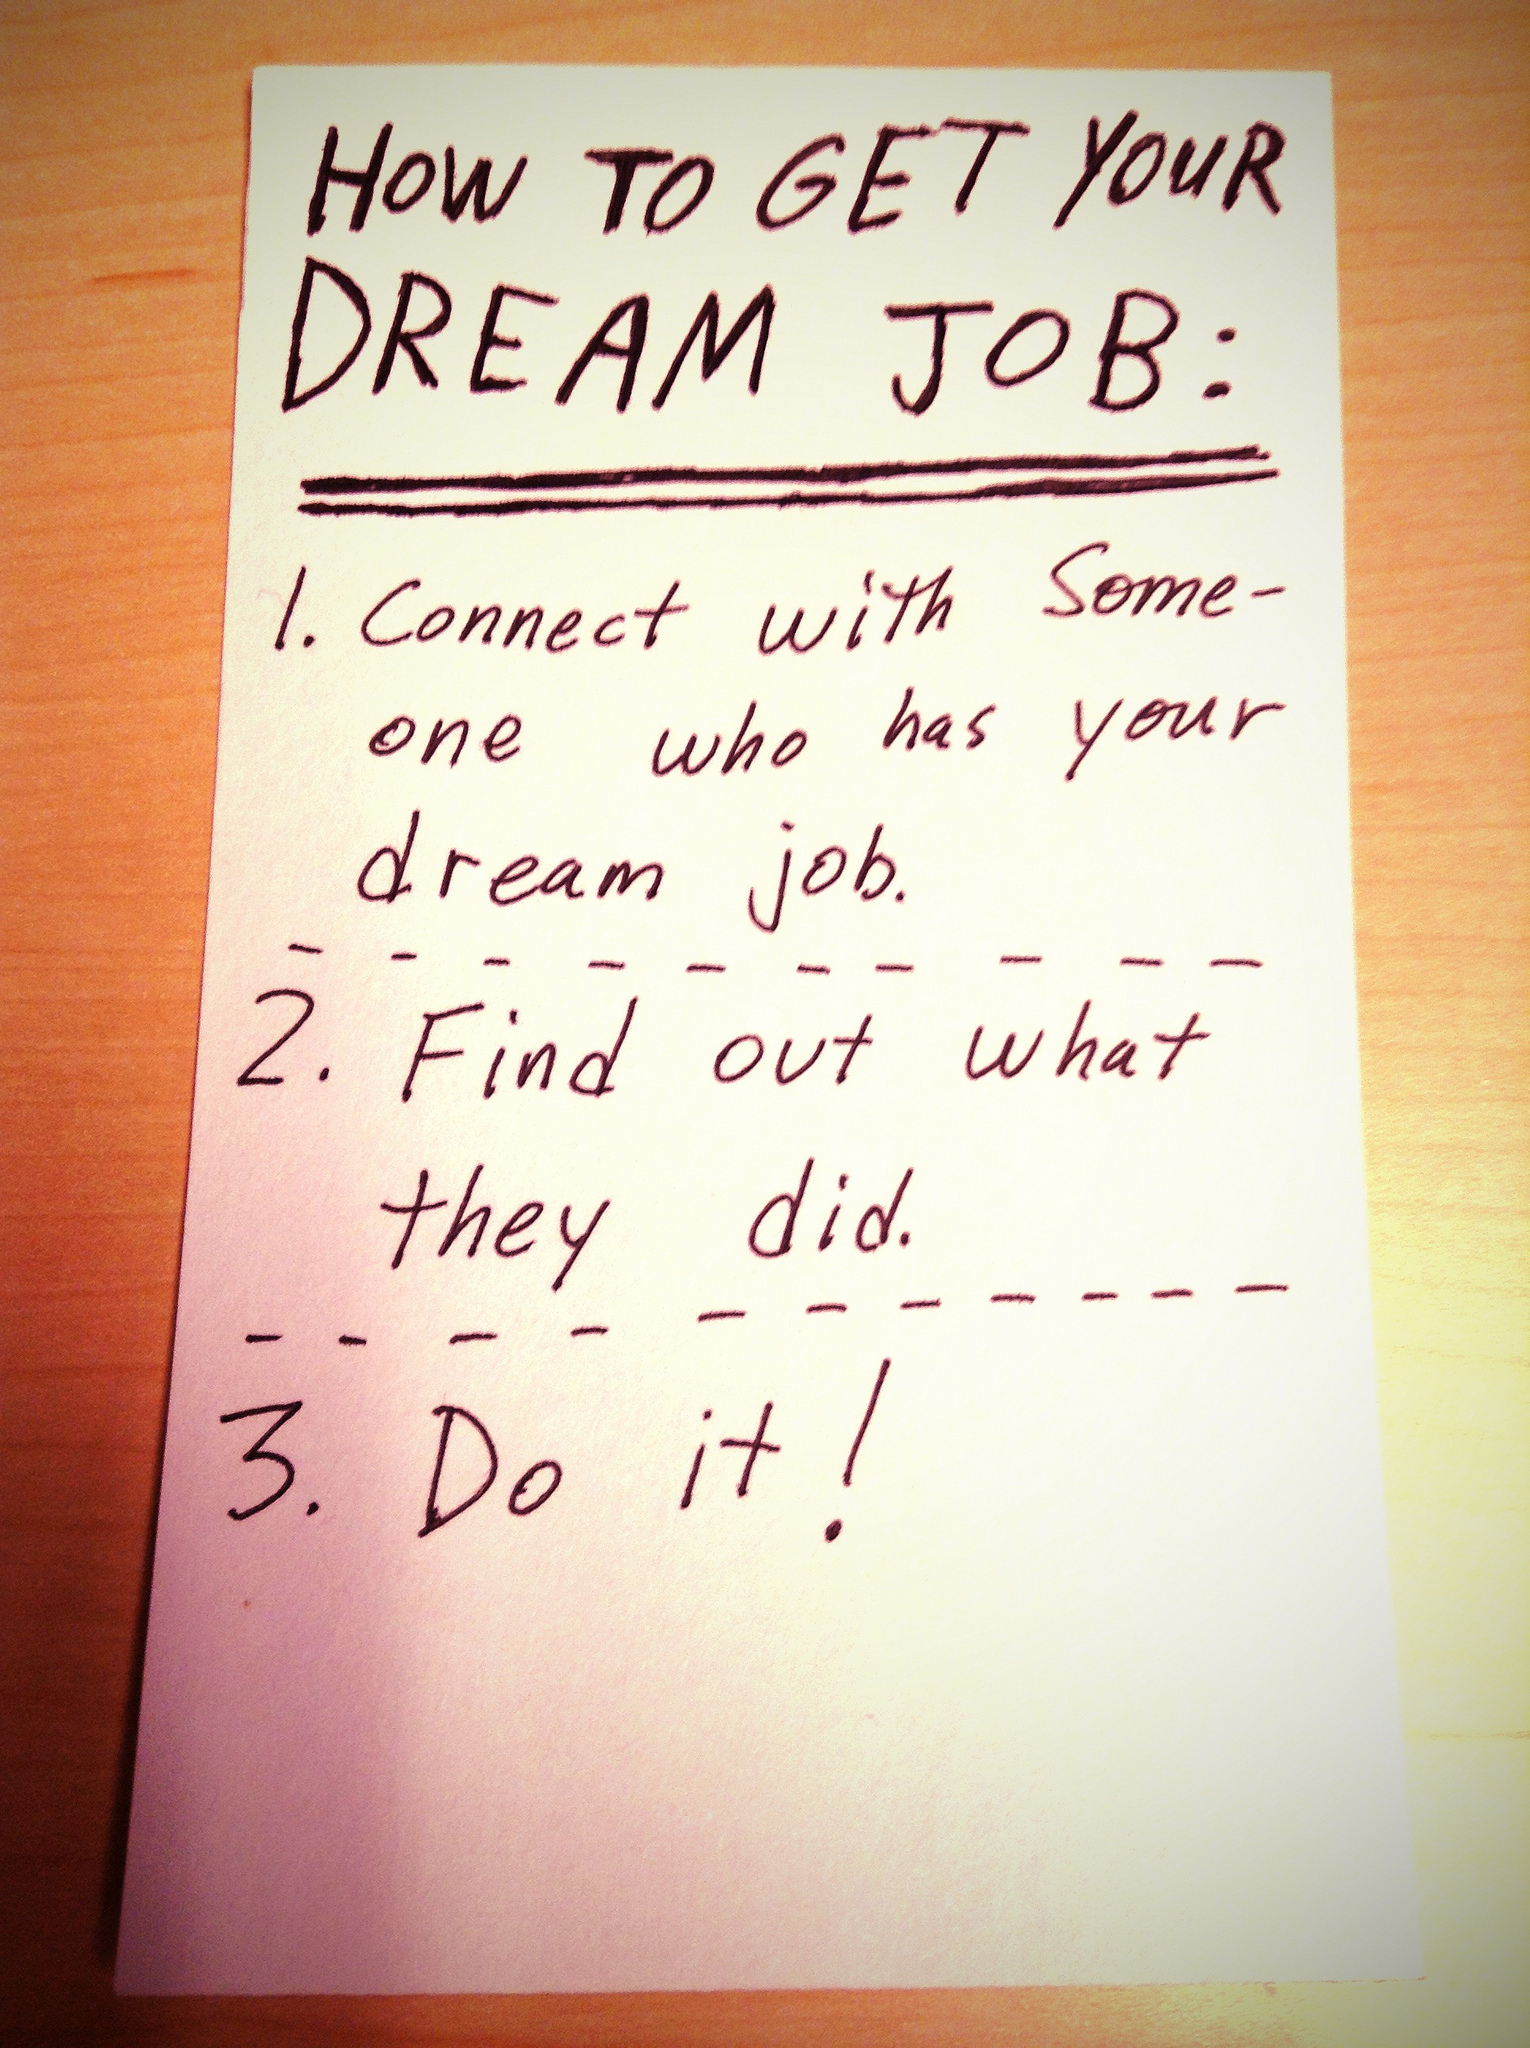 Getting your dream job may not be easy, but it's certainly possible ... photo by CC user Dannon Loveland on Flickr